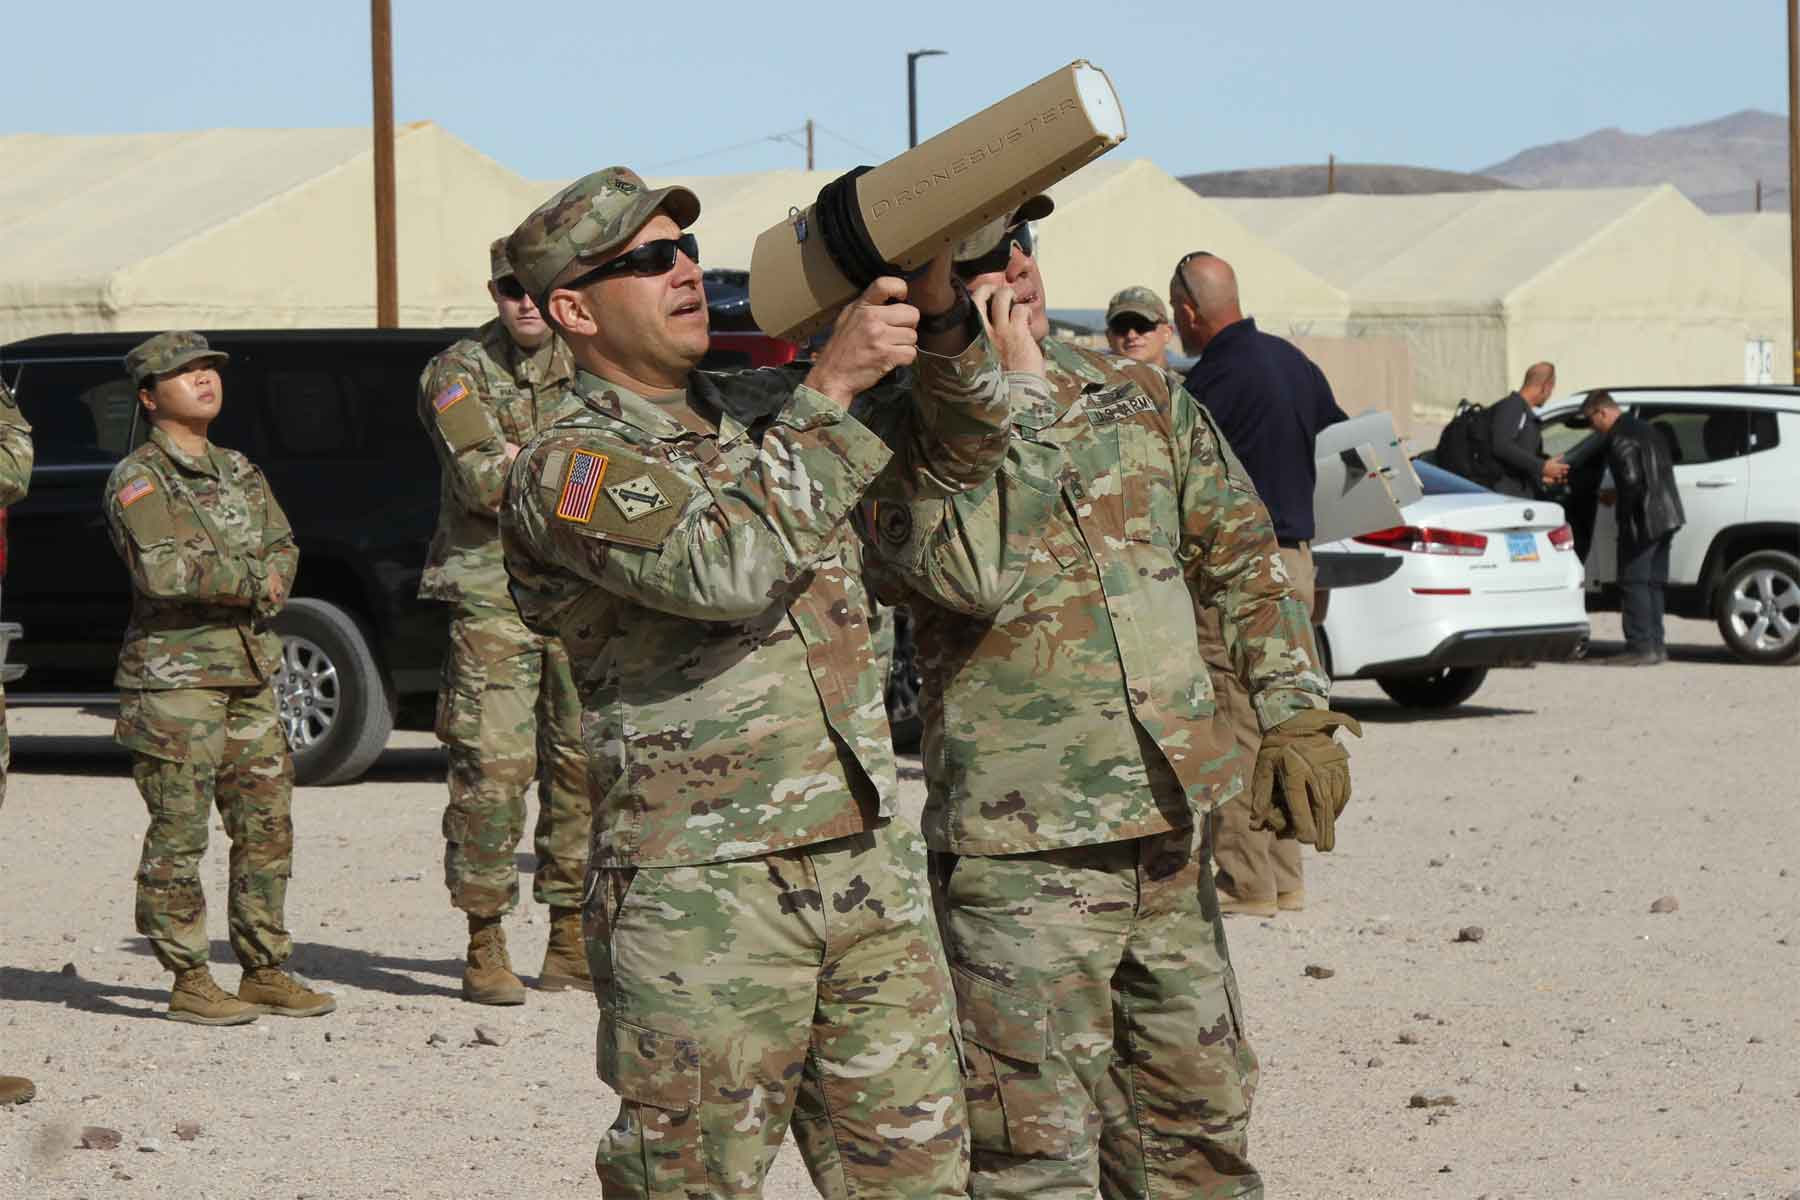 US Military News • US Military Test Hand-Held • Drone Defender System